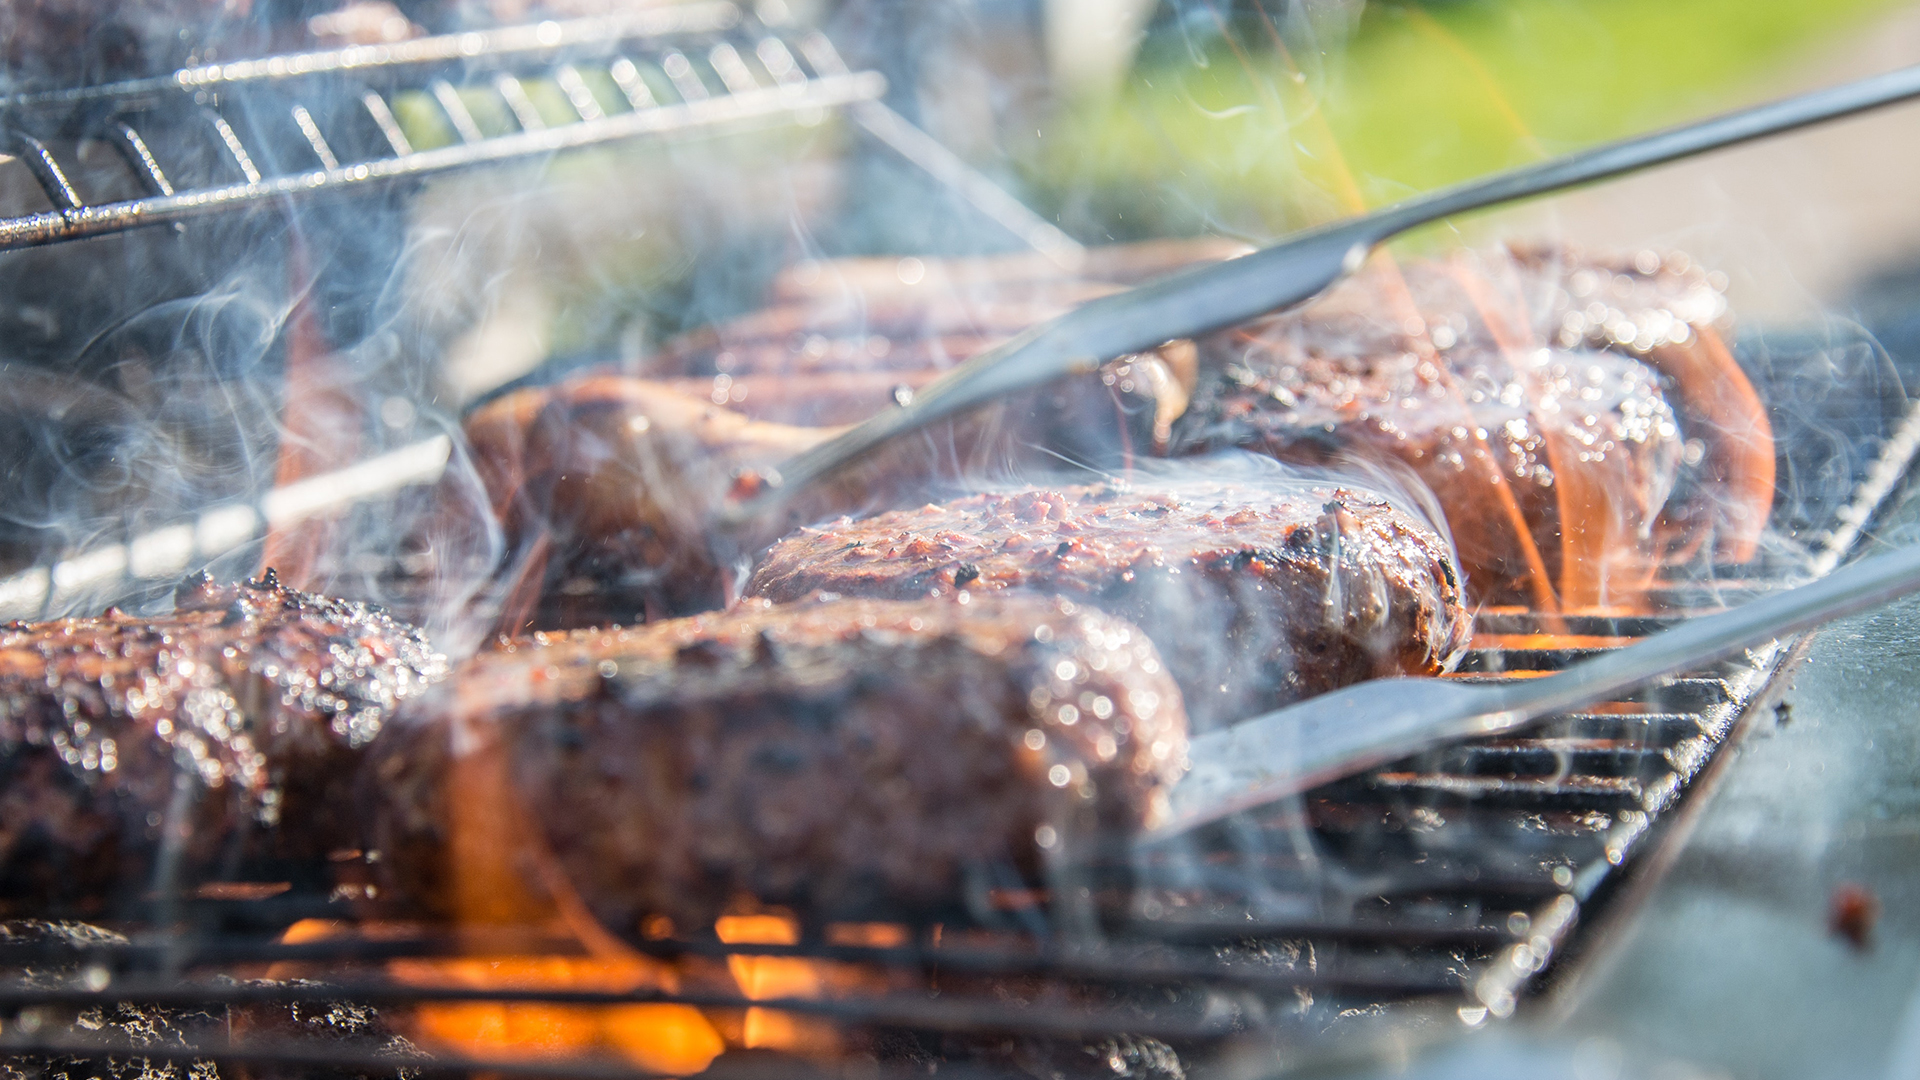 Grilling Fire Safety Tips